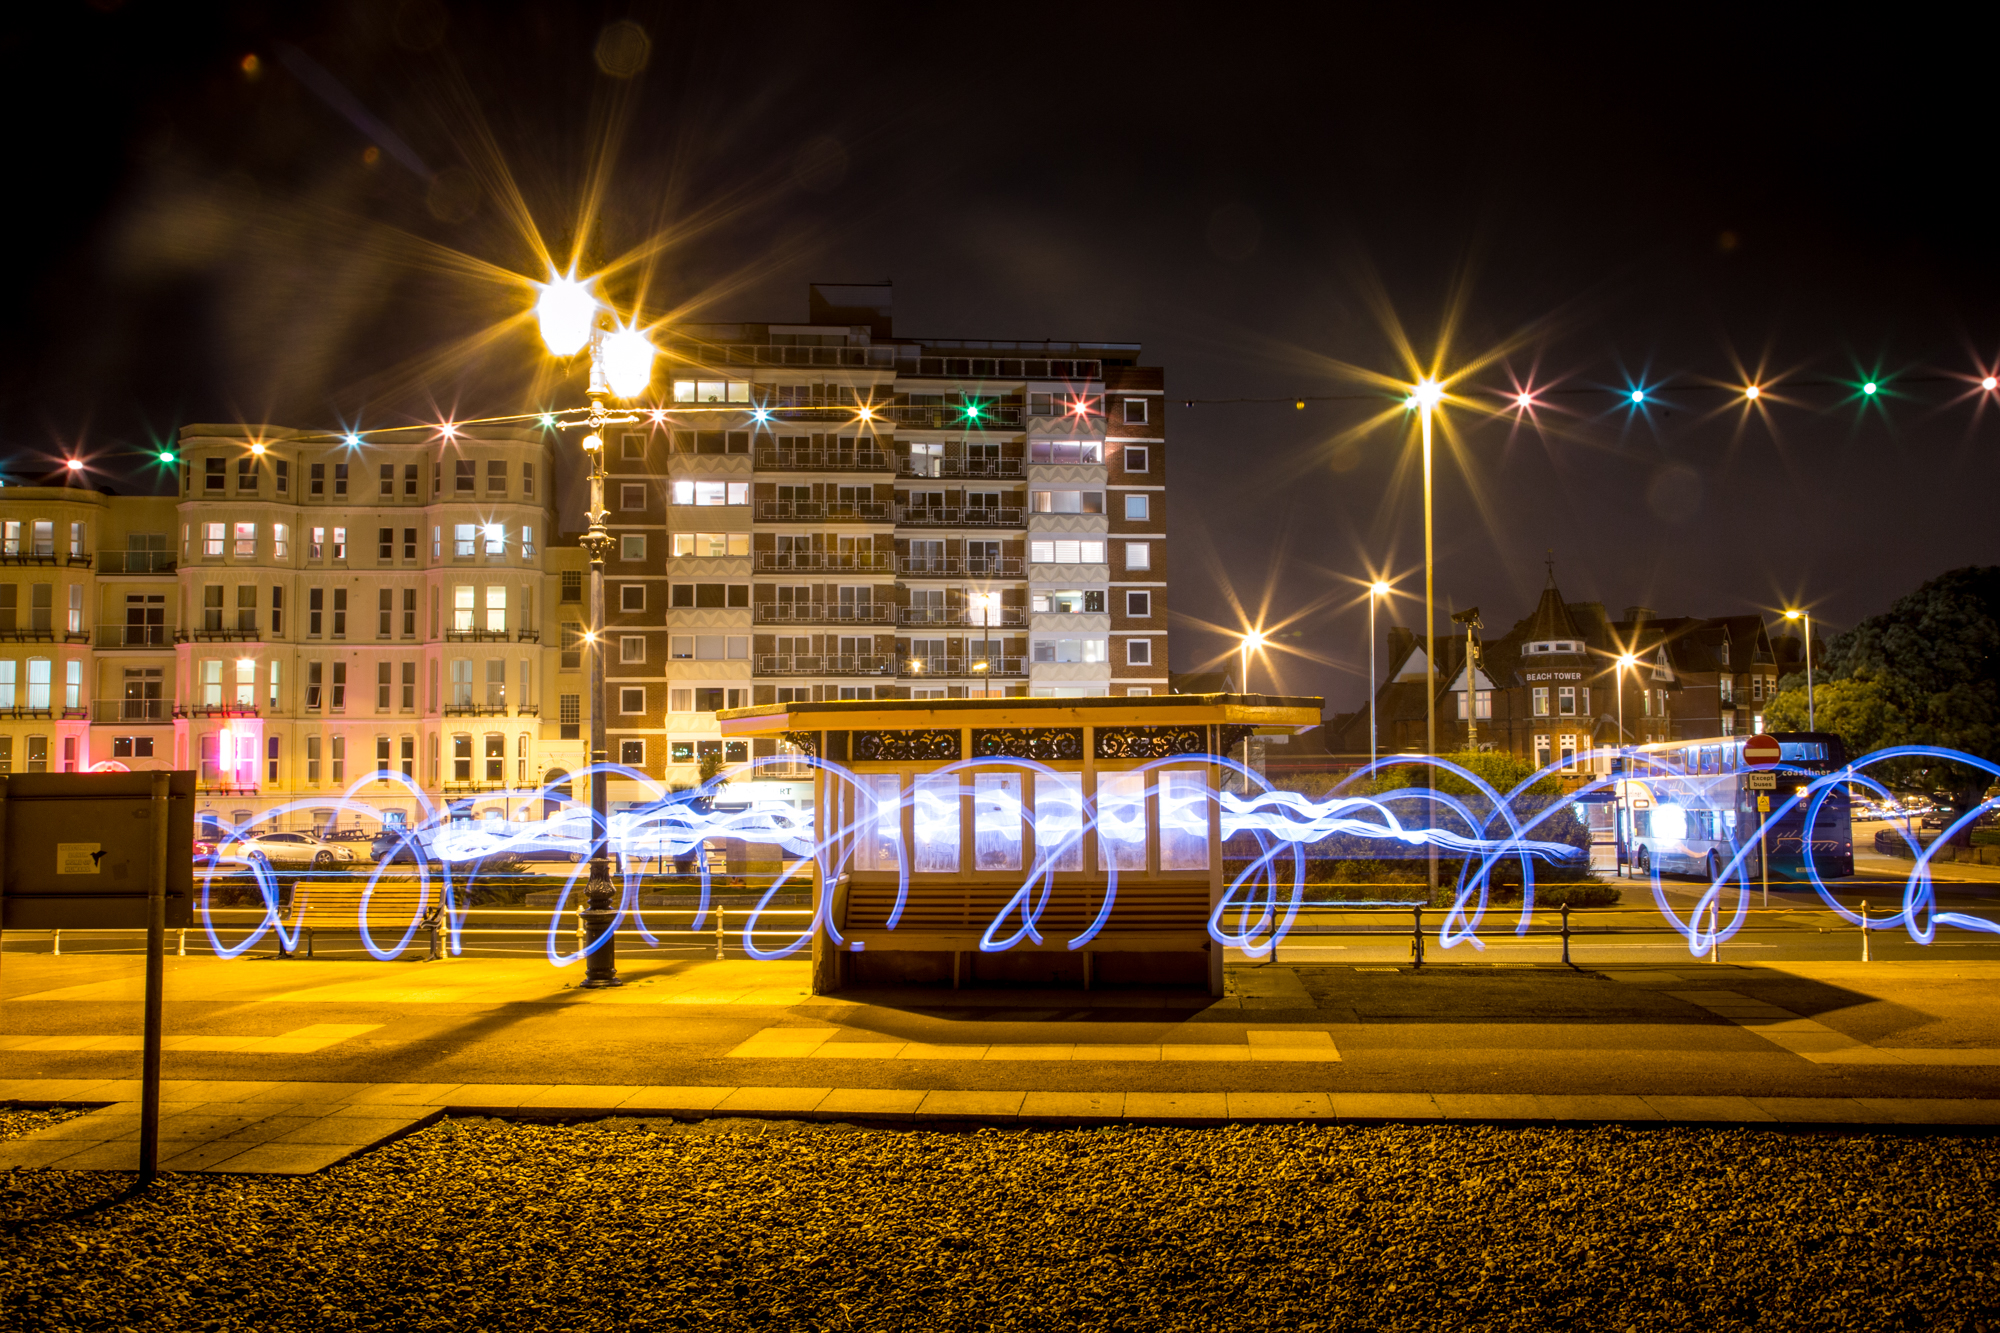 Colourful light painting in front of a Southsea yellow shelter at night.